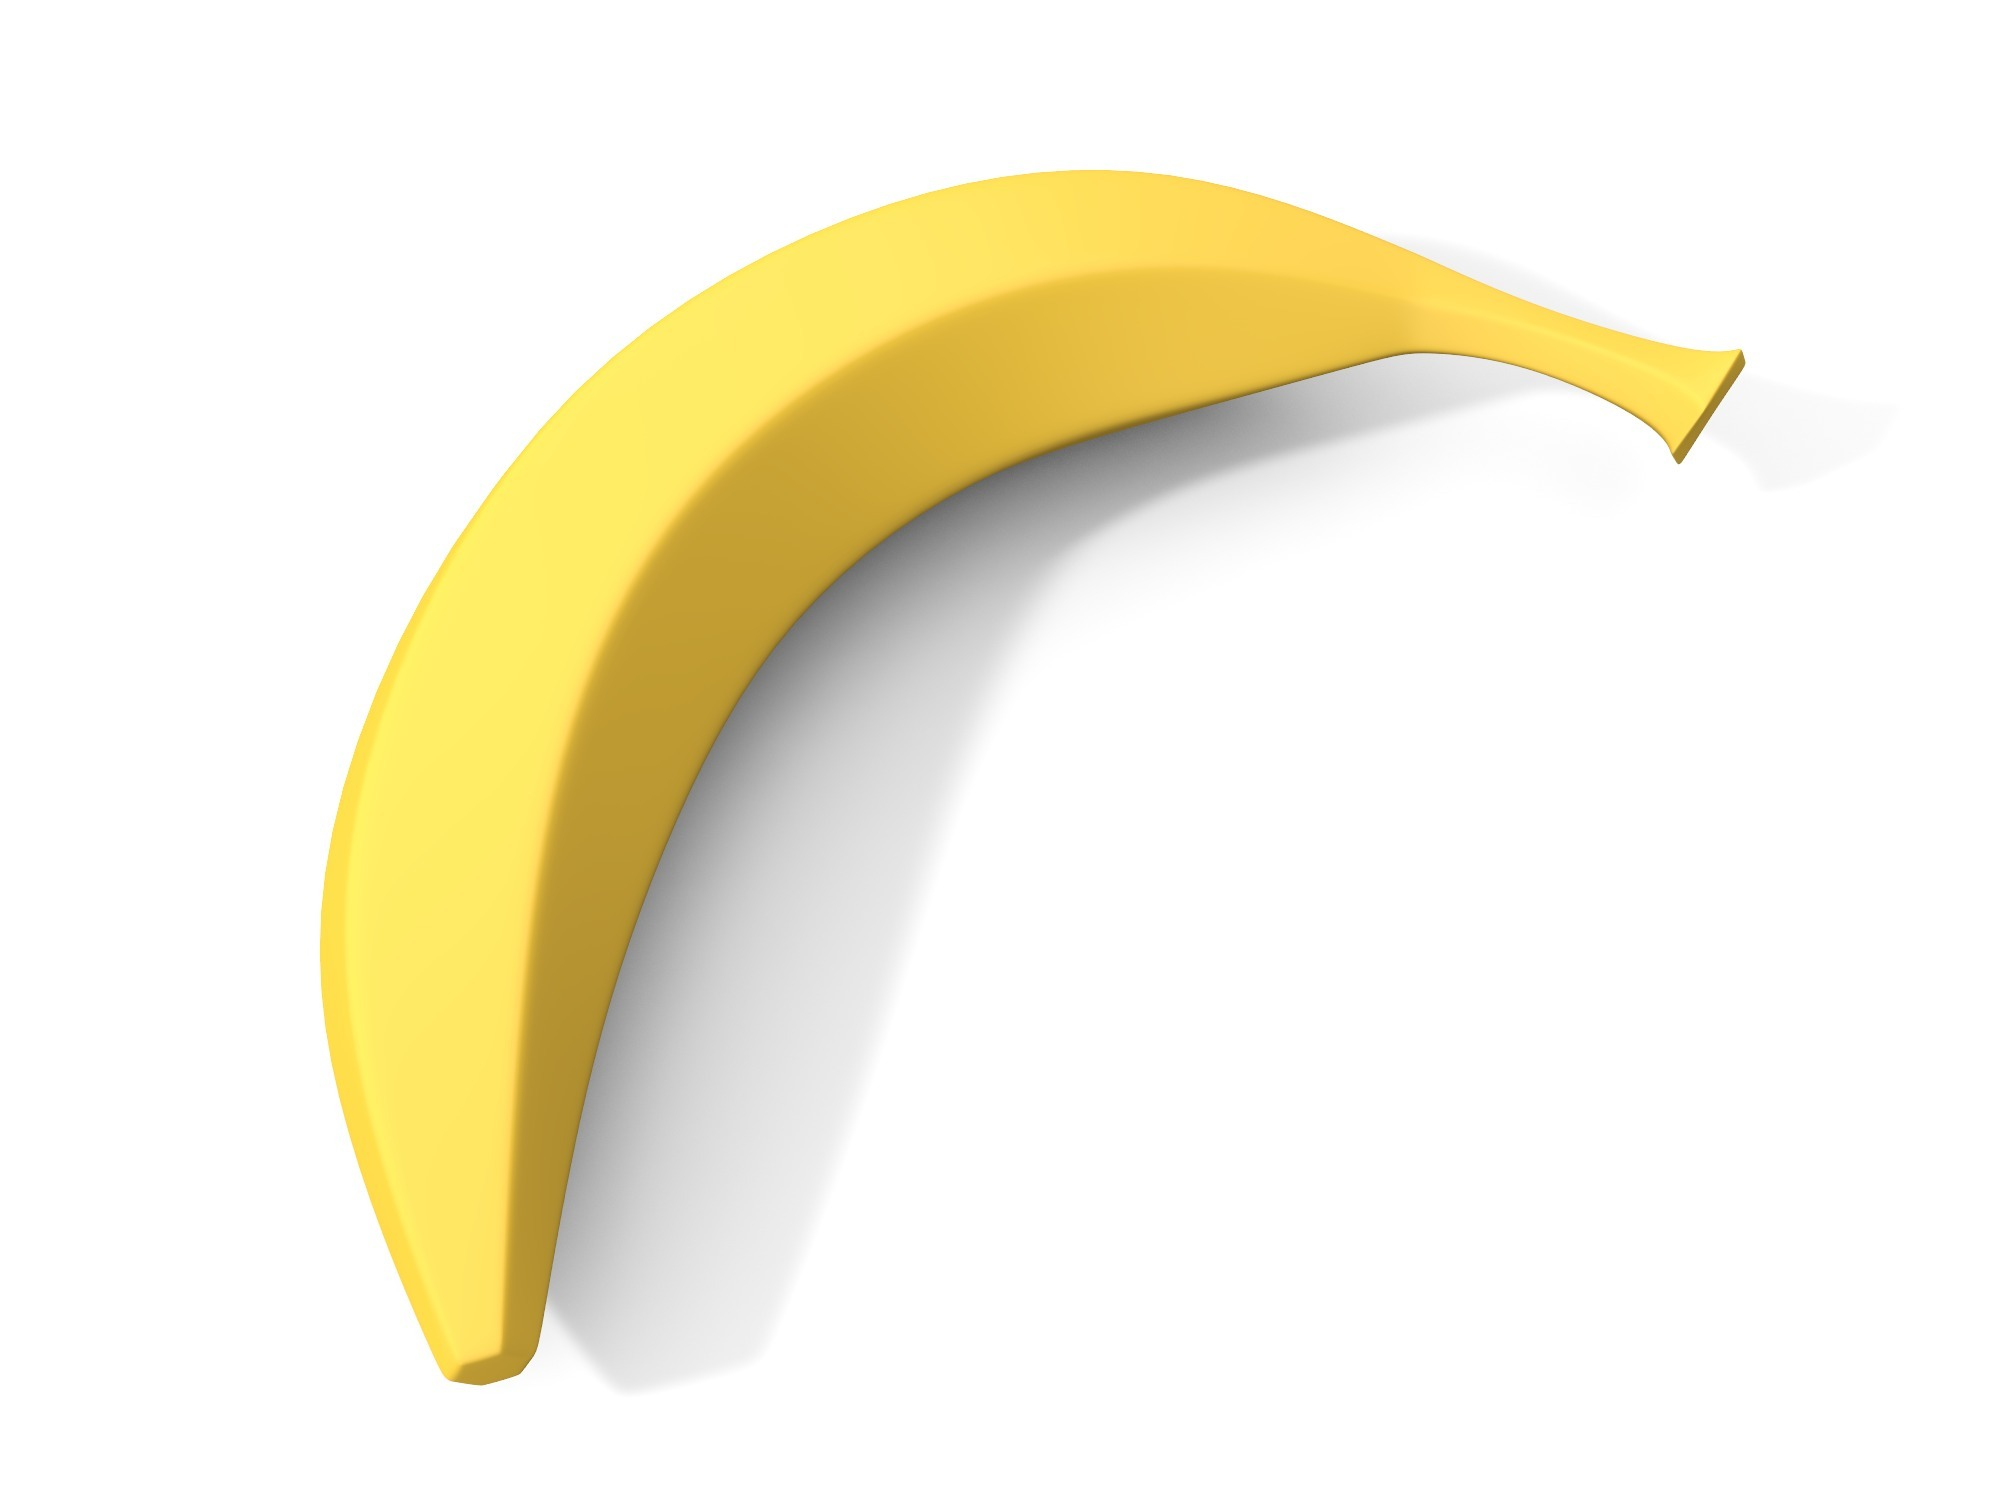 Banana wide - 3D design by assets Nov 7, 2018